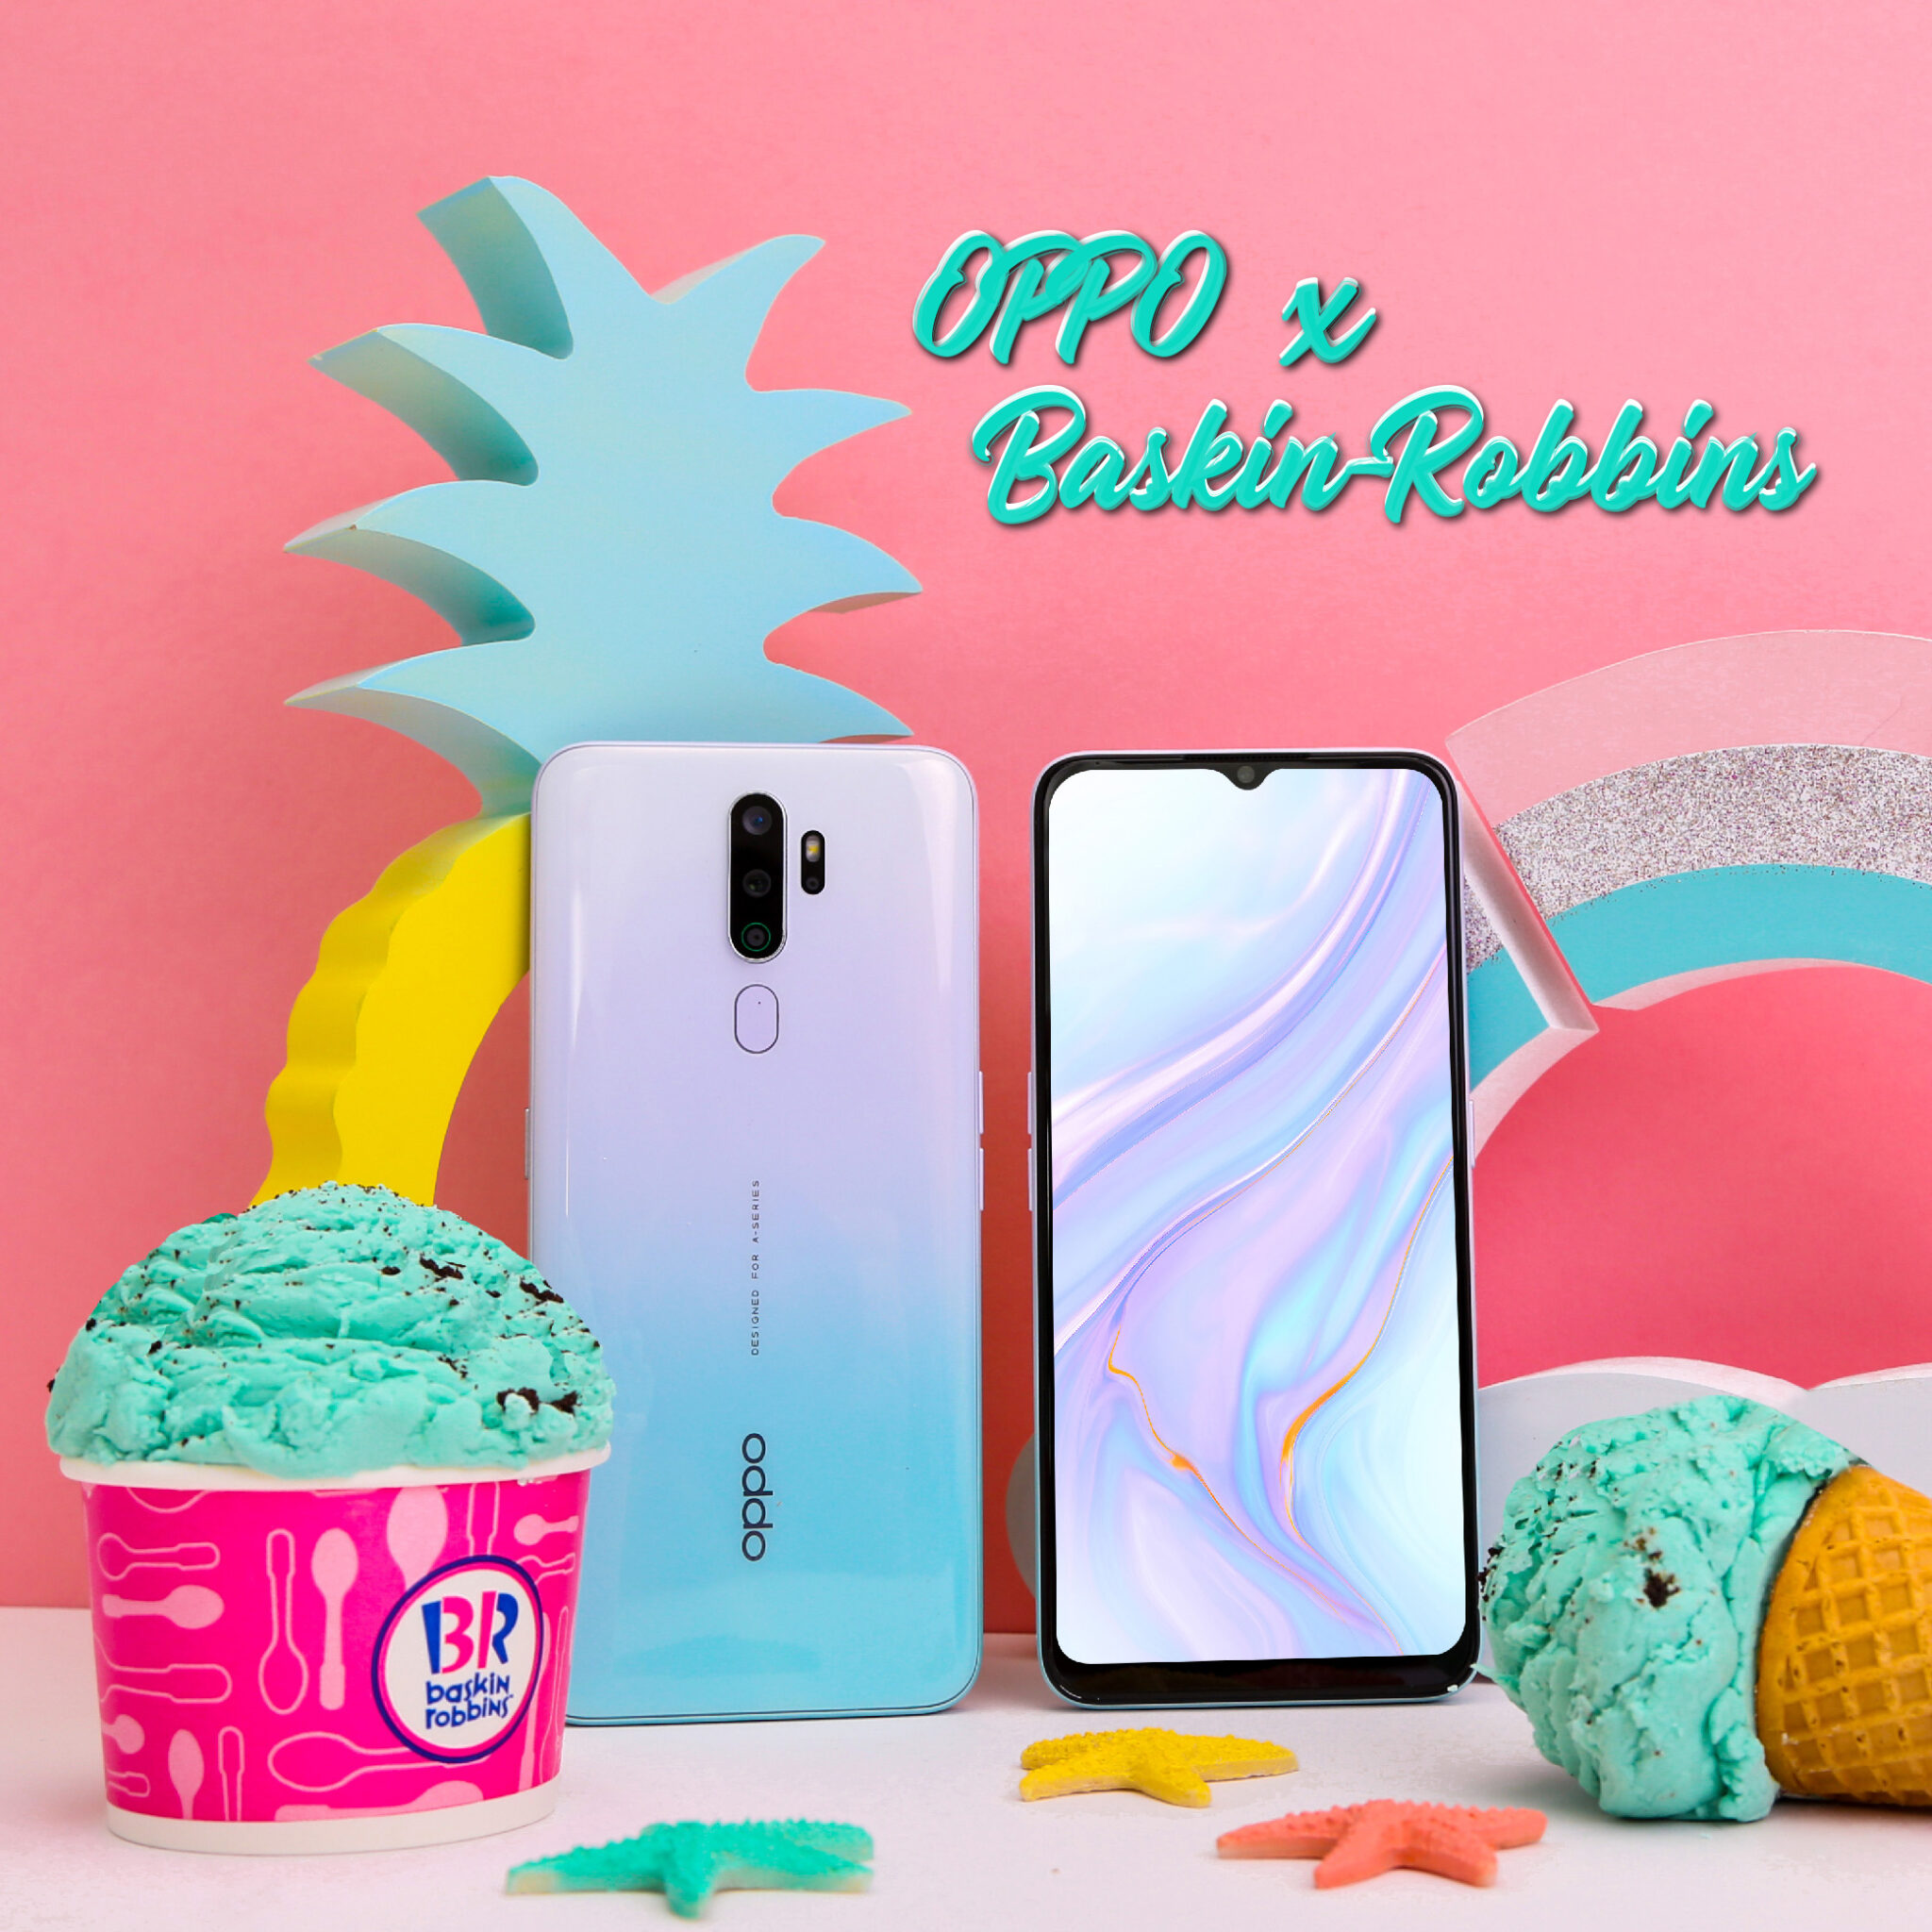 Sweet looking OPPO A9 2020 Vanilla Mint up for preorders with delicious surprise 2